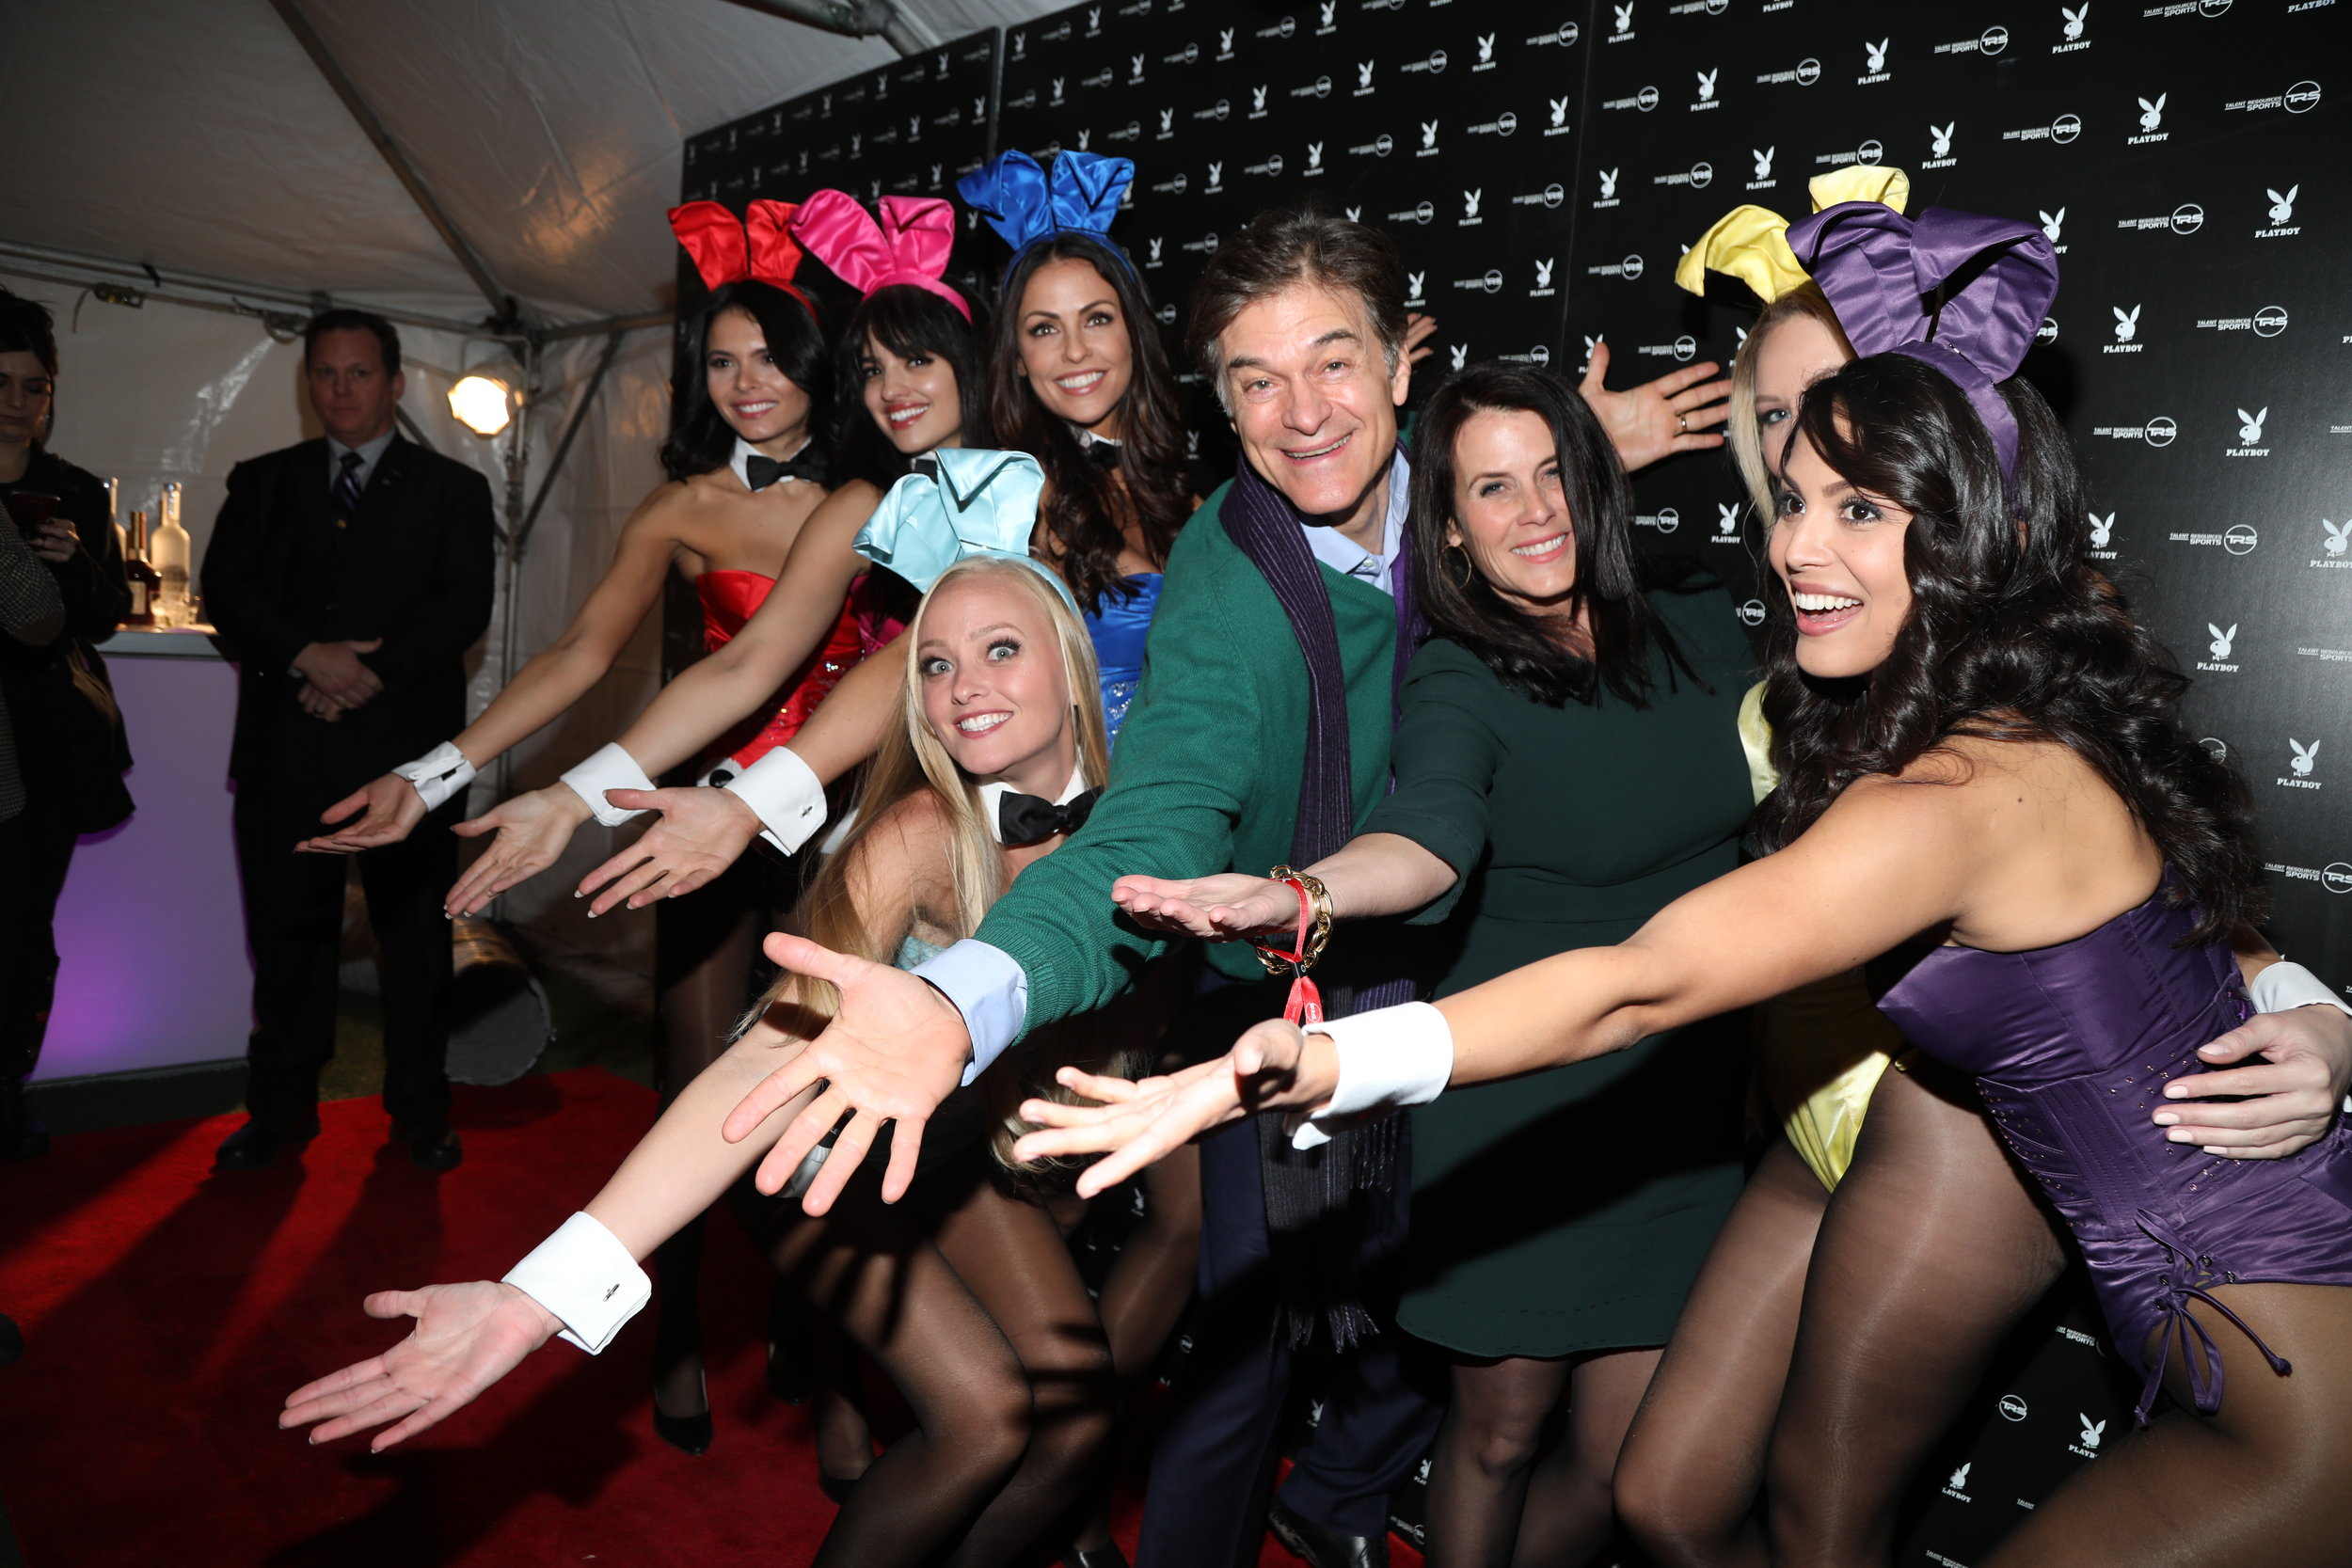 Dr. Oz with Playmates